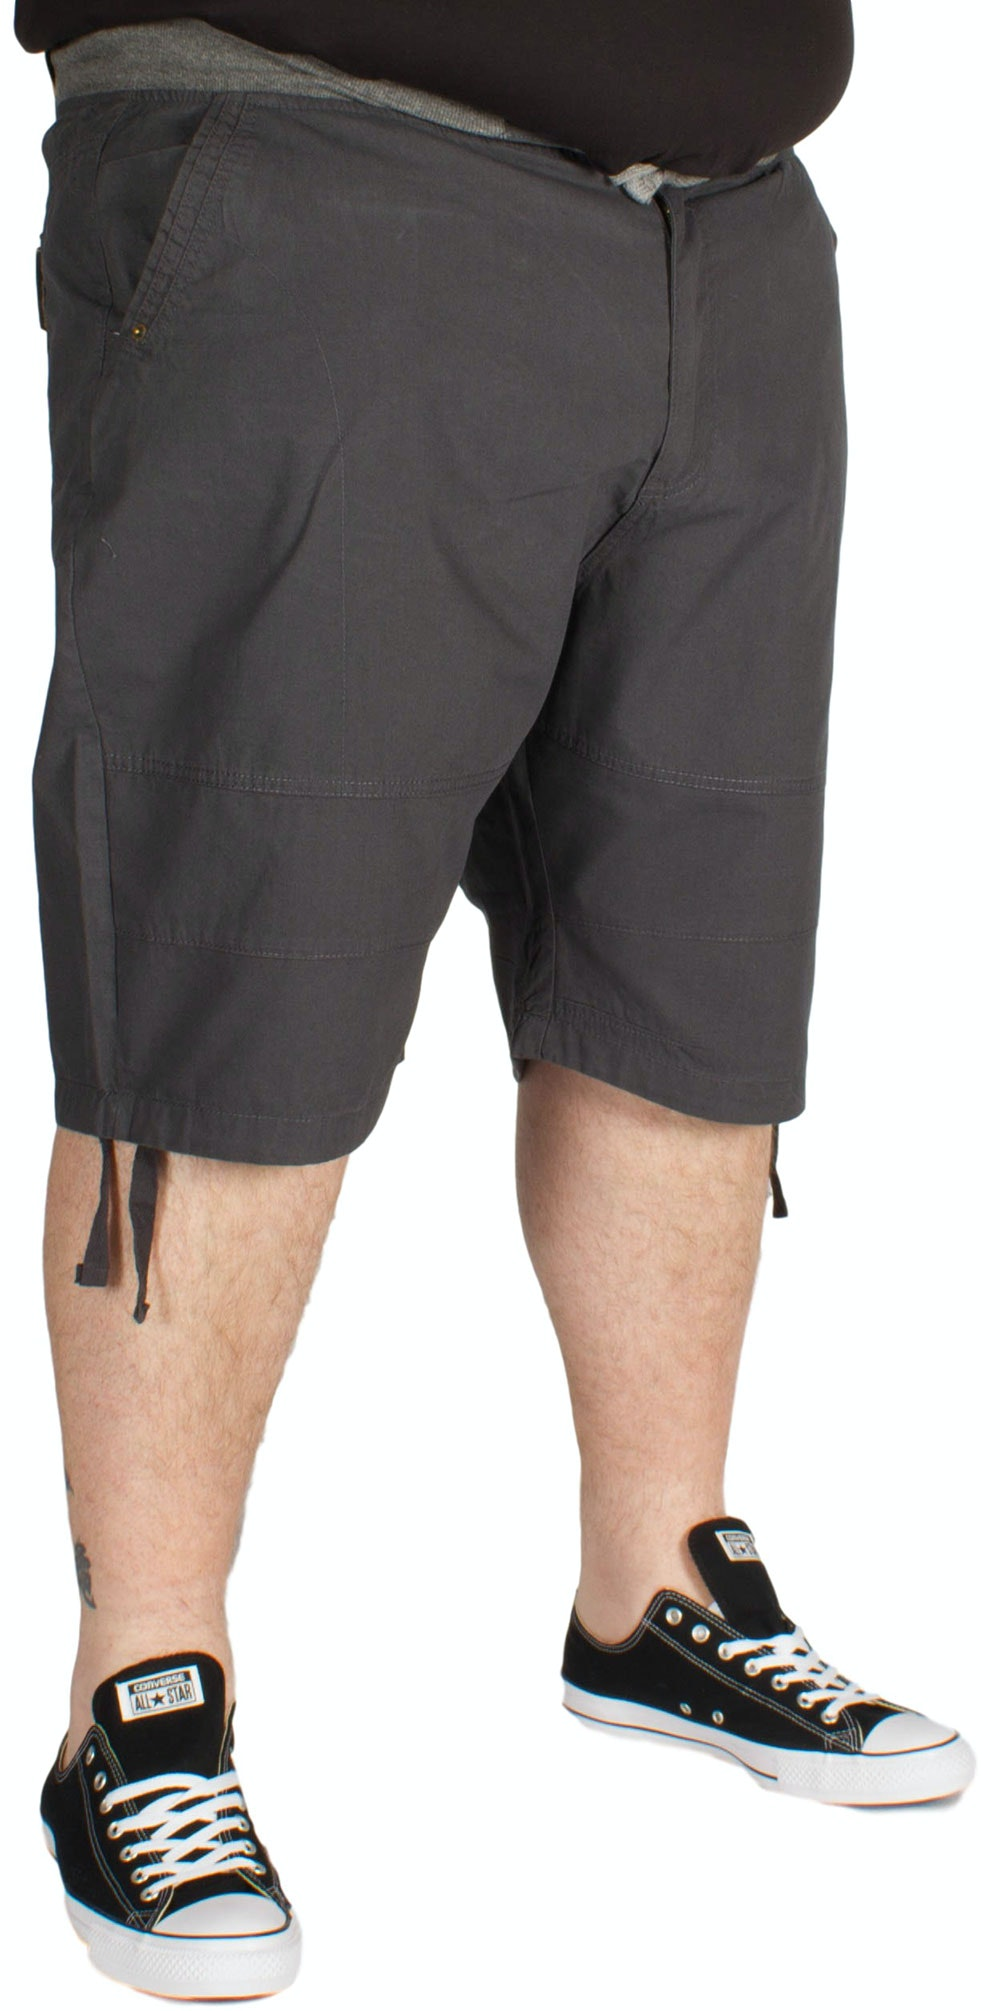 KAM Rib Elastic Fashion Shorts Charcoal